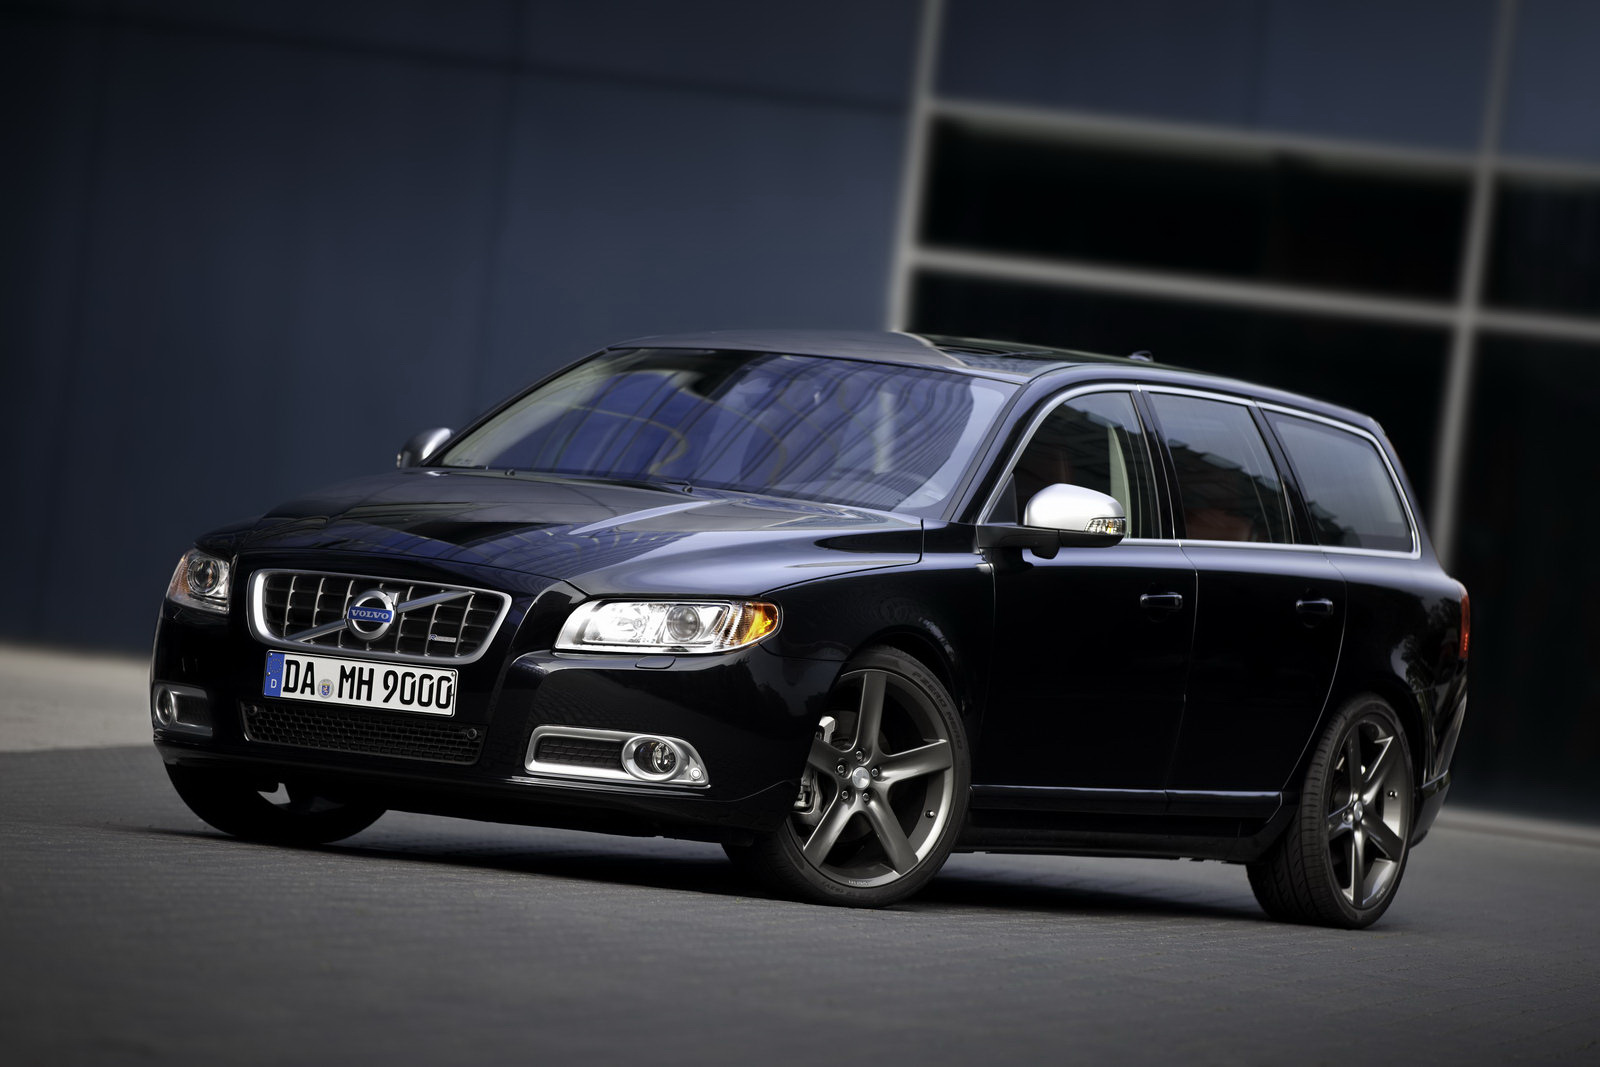 Related image with 2008 volvo s80 t6